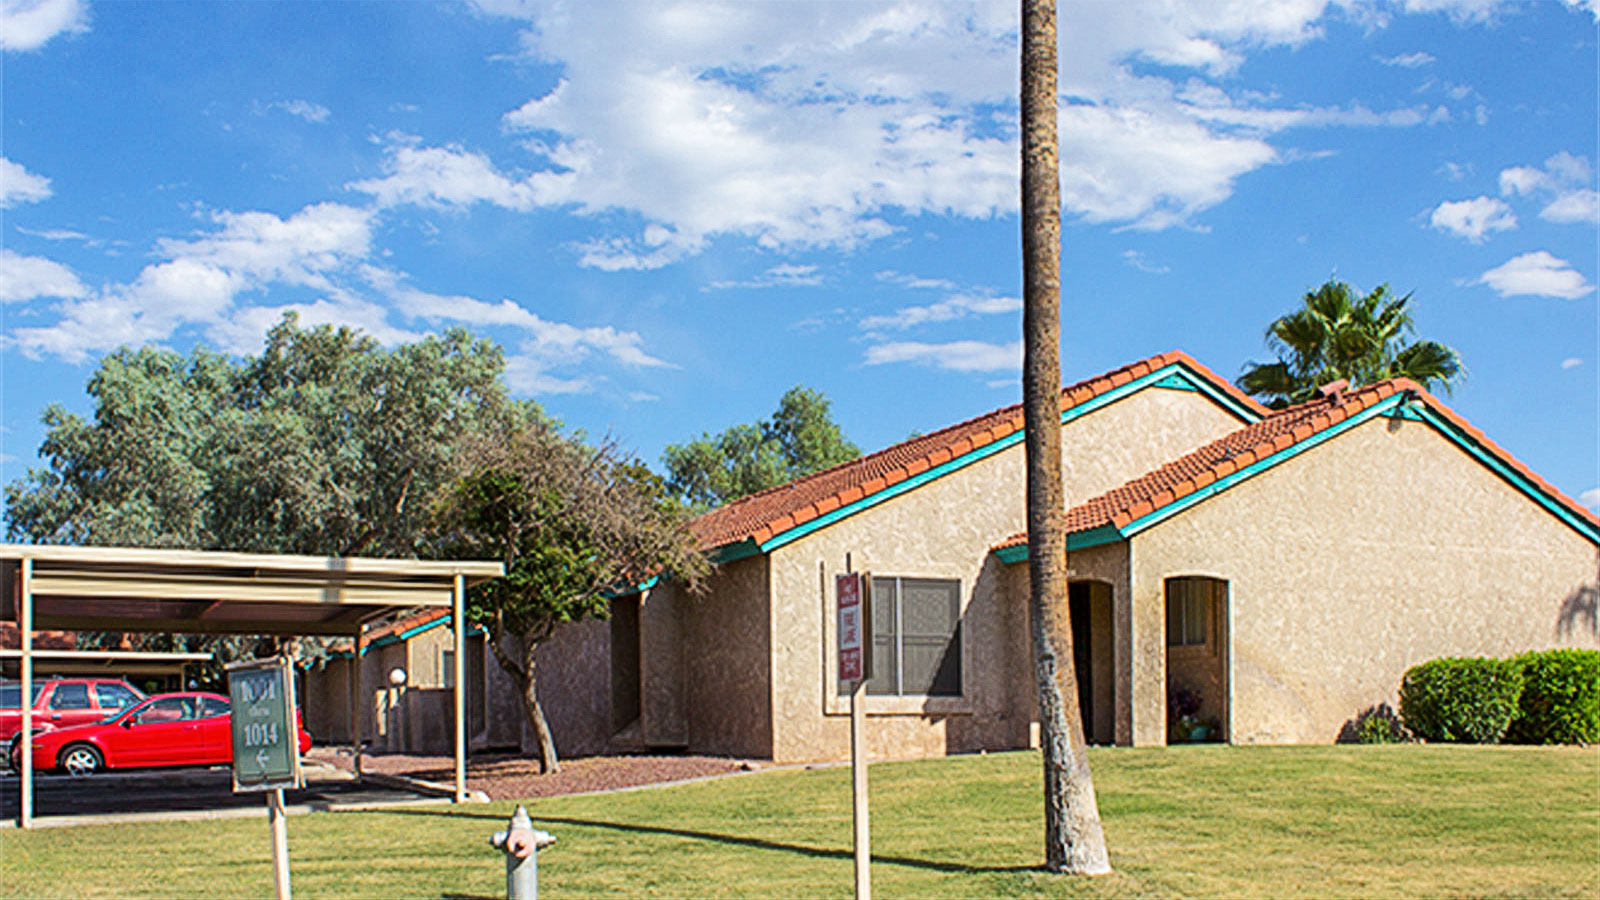 Orange Tree Village Apartments | 645 West Orange Grove Road, Tucson, AZ 85704 | 110 Units | Built in 1981 | $10,550,000 | $95,909 Per Unit | $75.28 Per SF